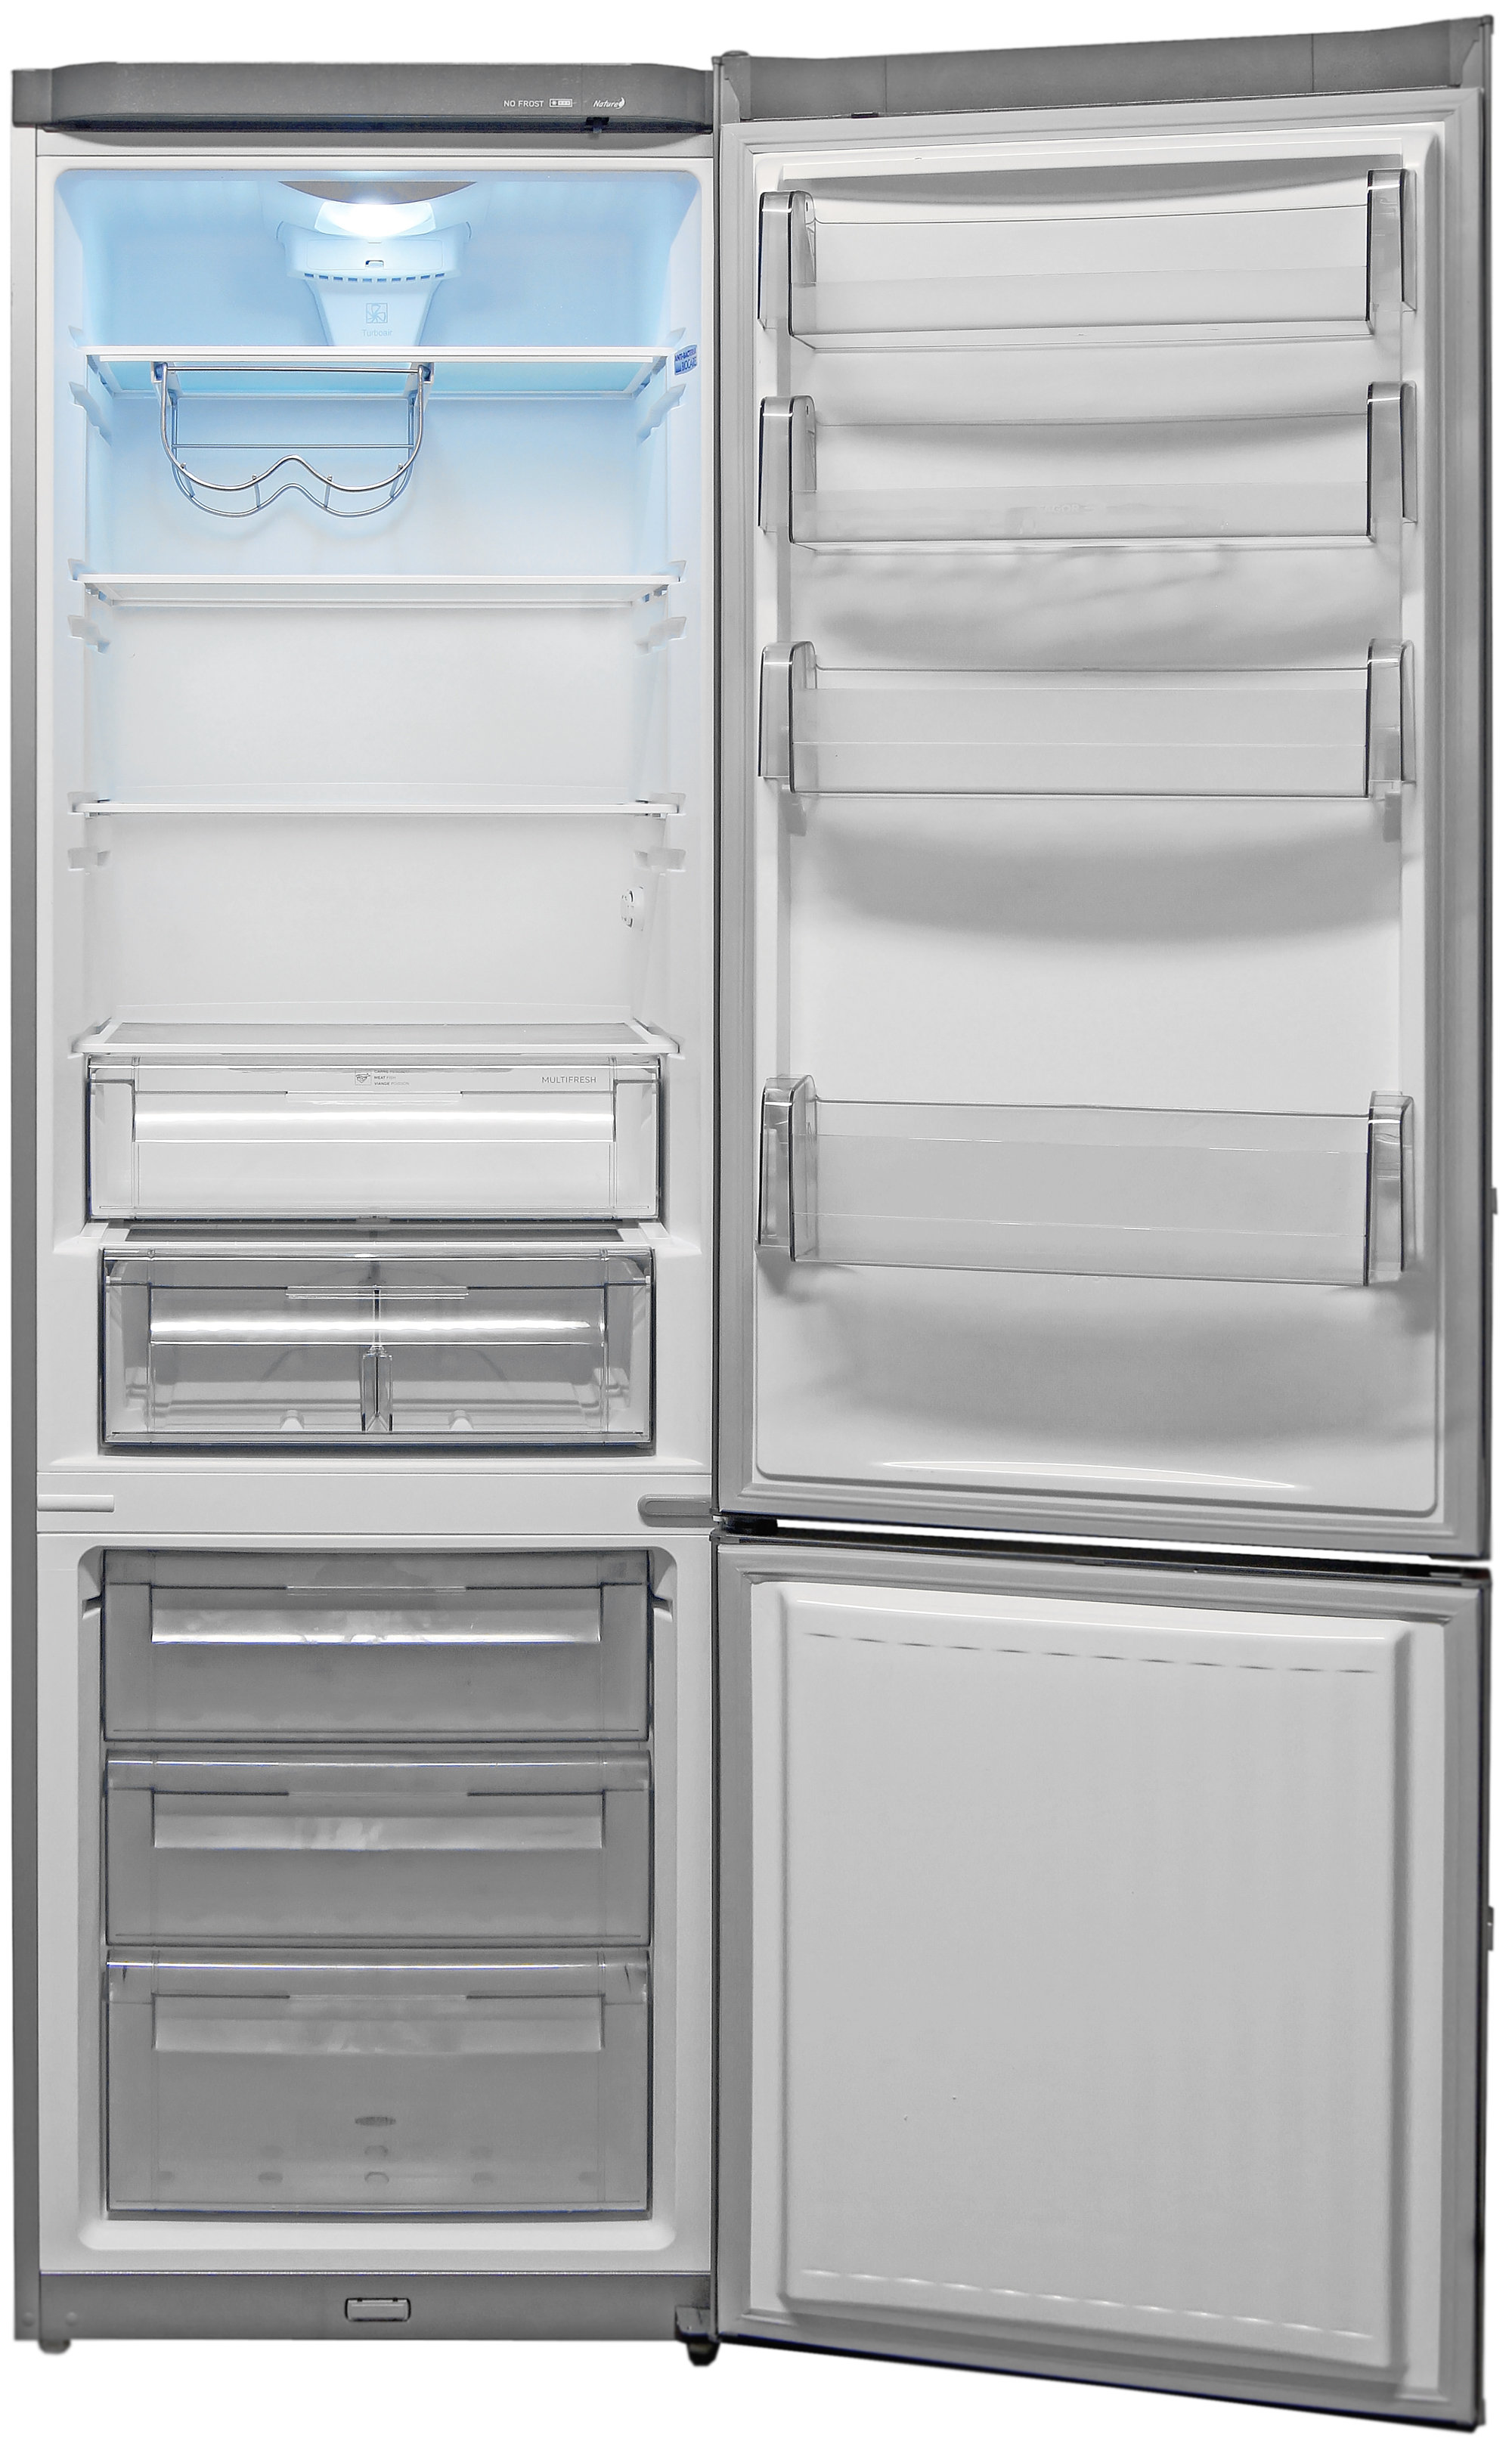 Even with just about 12 cubic feet of advertised space, the Fagor FFJA4845X almost never felt cramped.